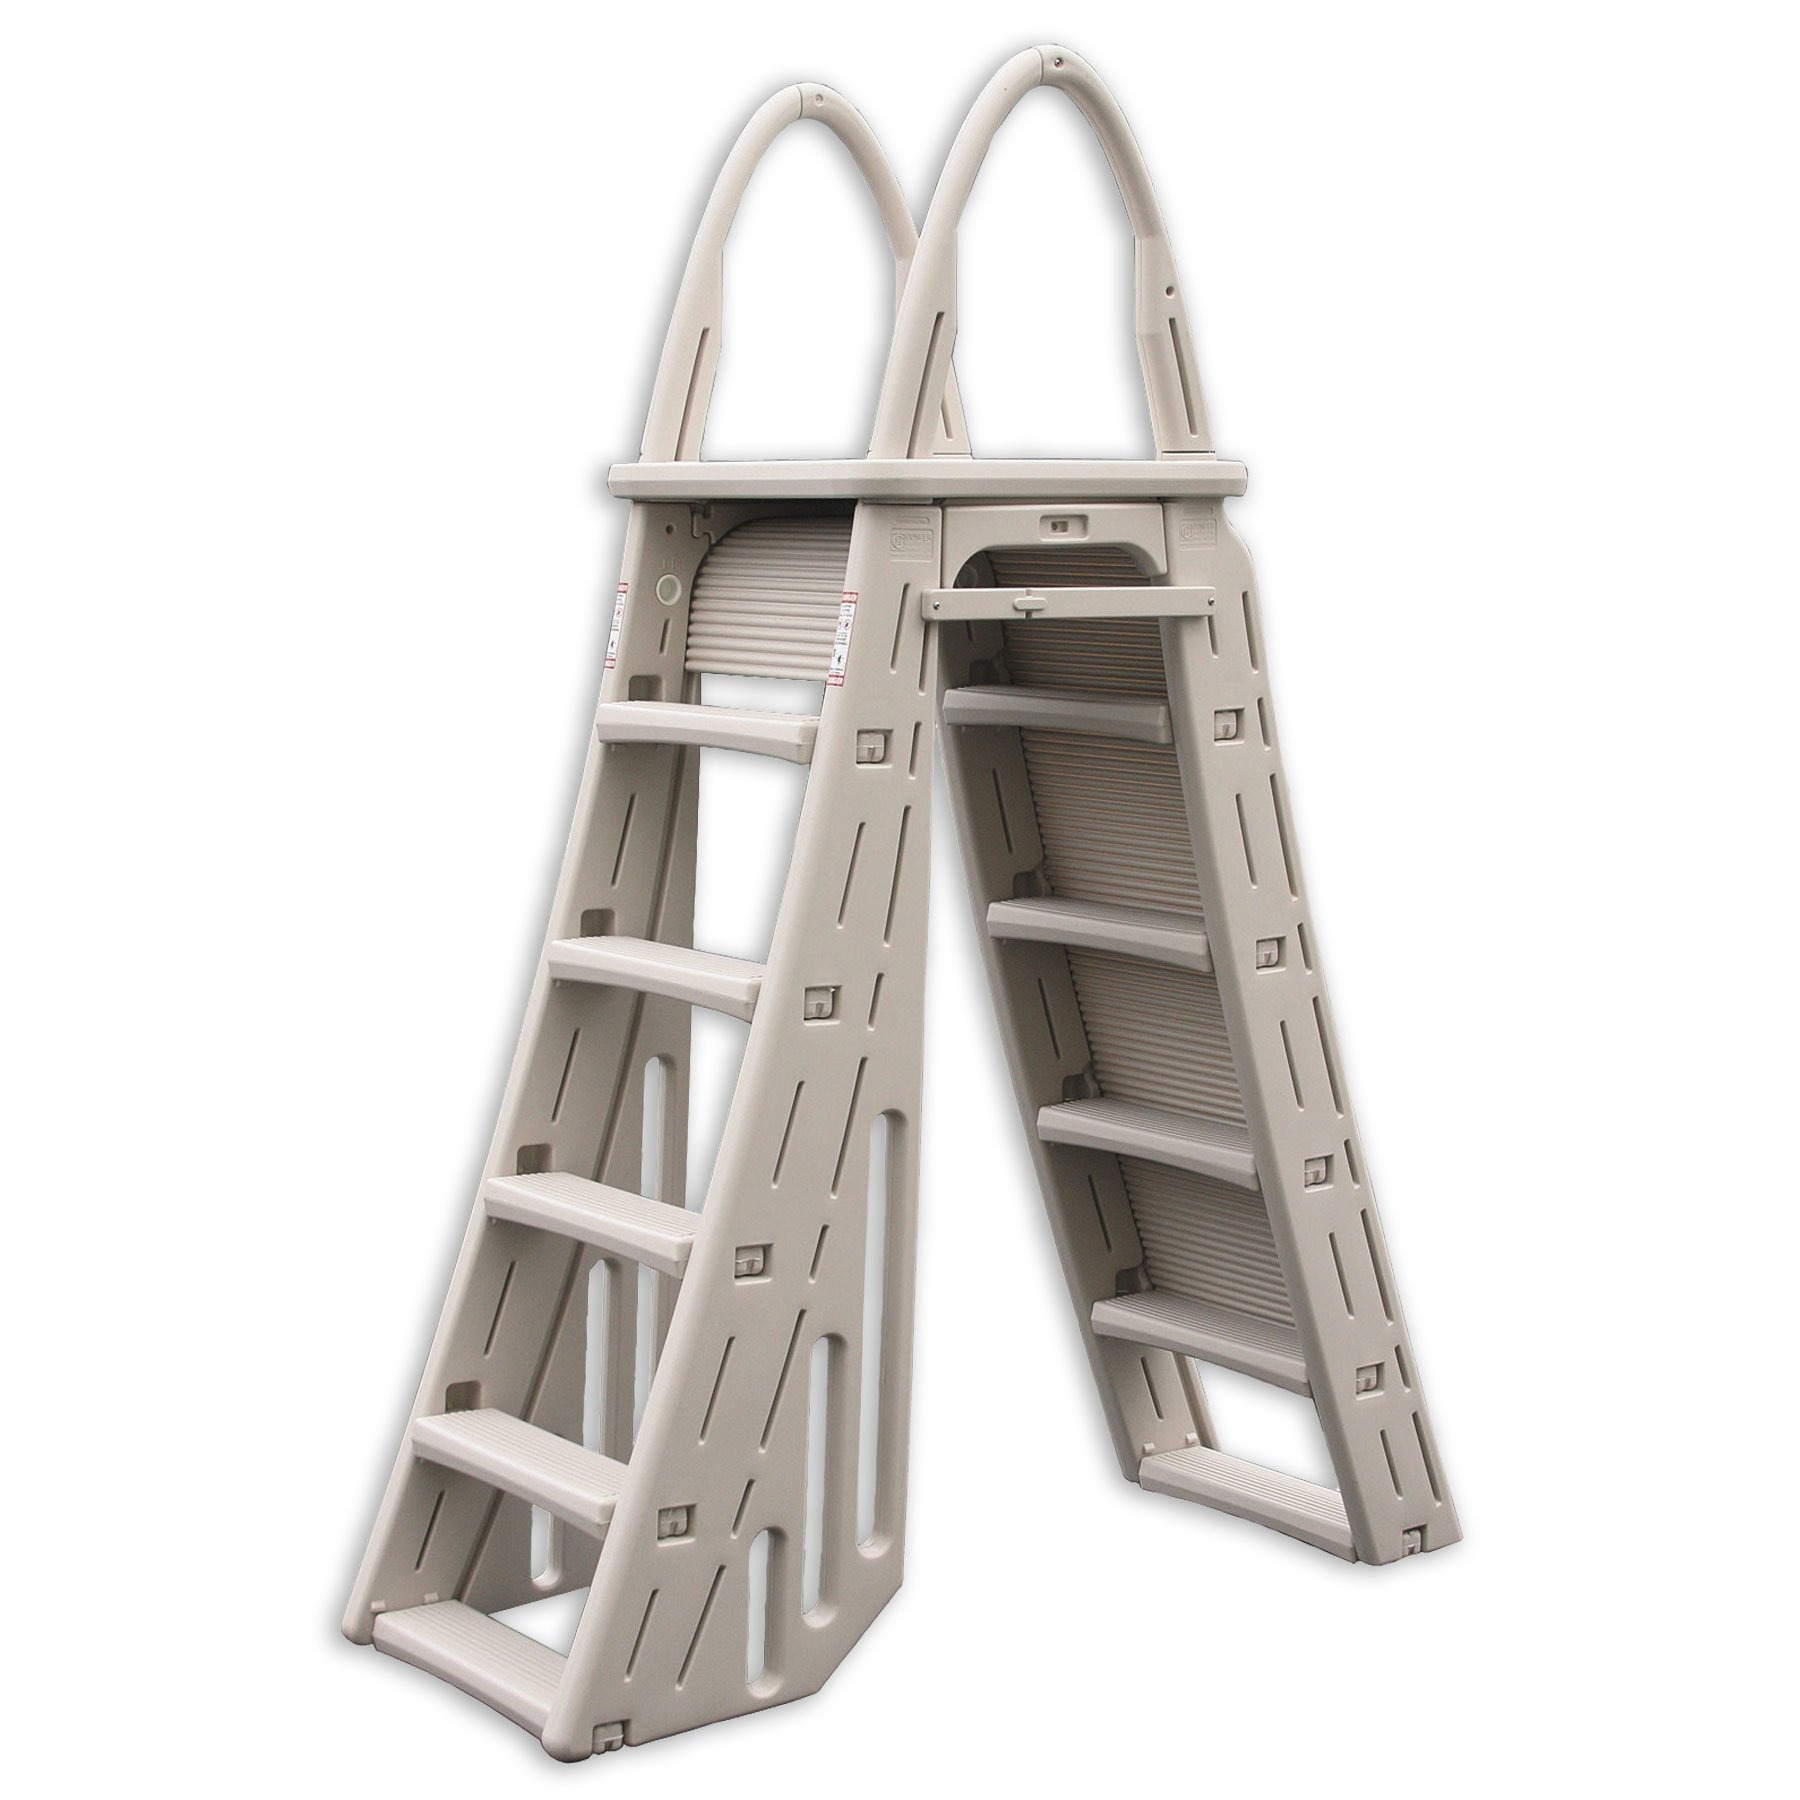 Confer Heavy-Duty A-Frame Above-Ground Pool Ladder + Hydro Tools Protective Mat by Confer